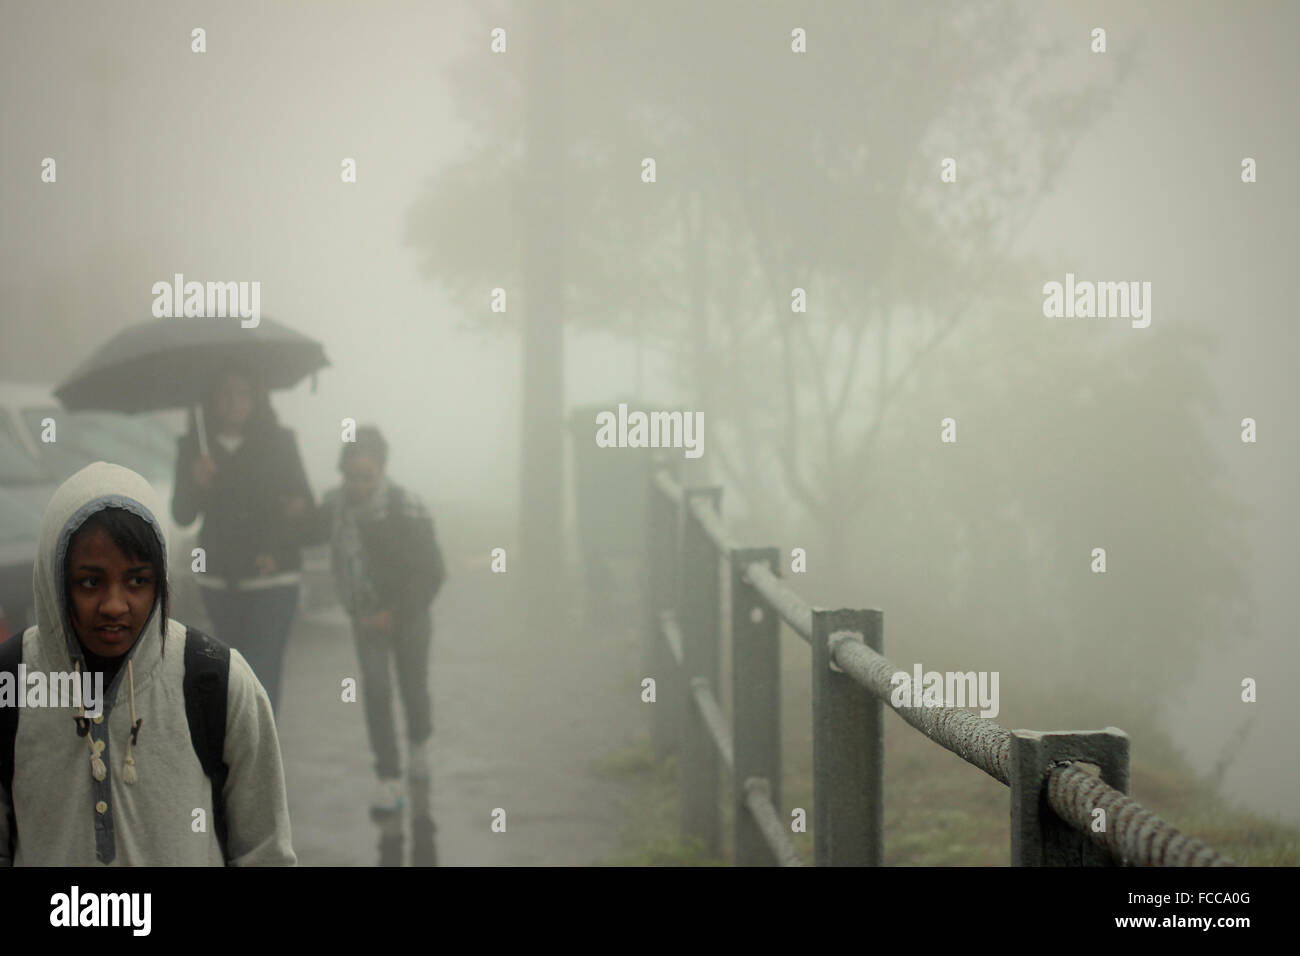 Girl Walking On Street During Foggy Weather Stock Photo